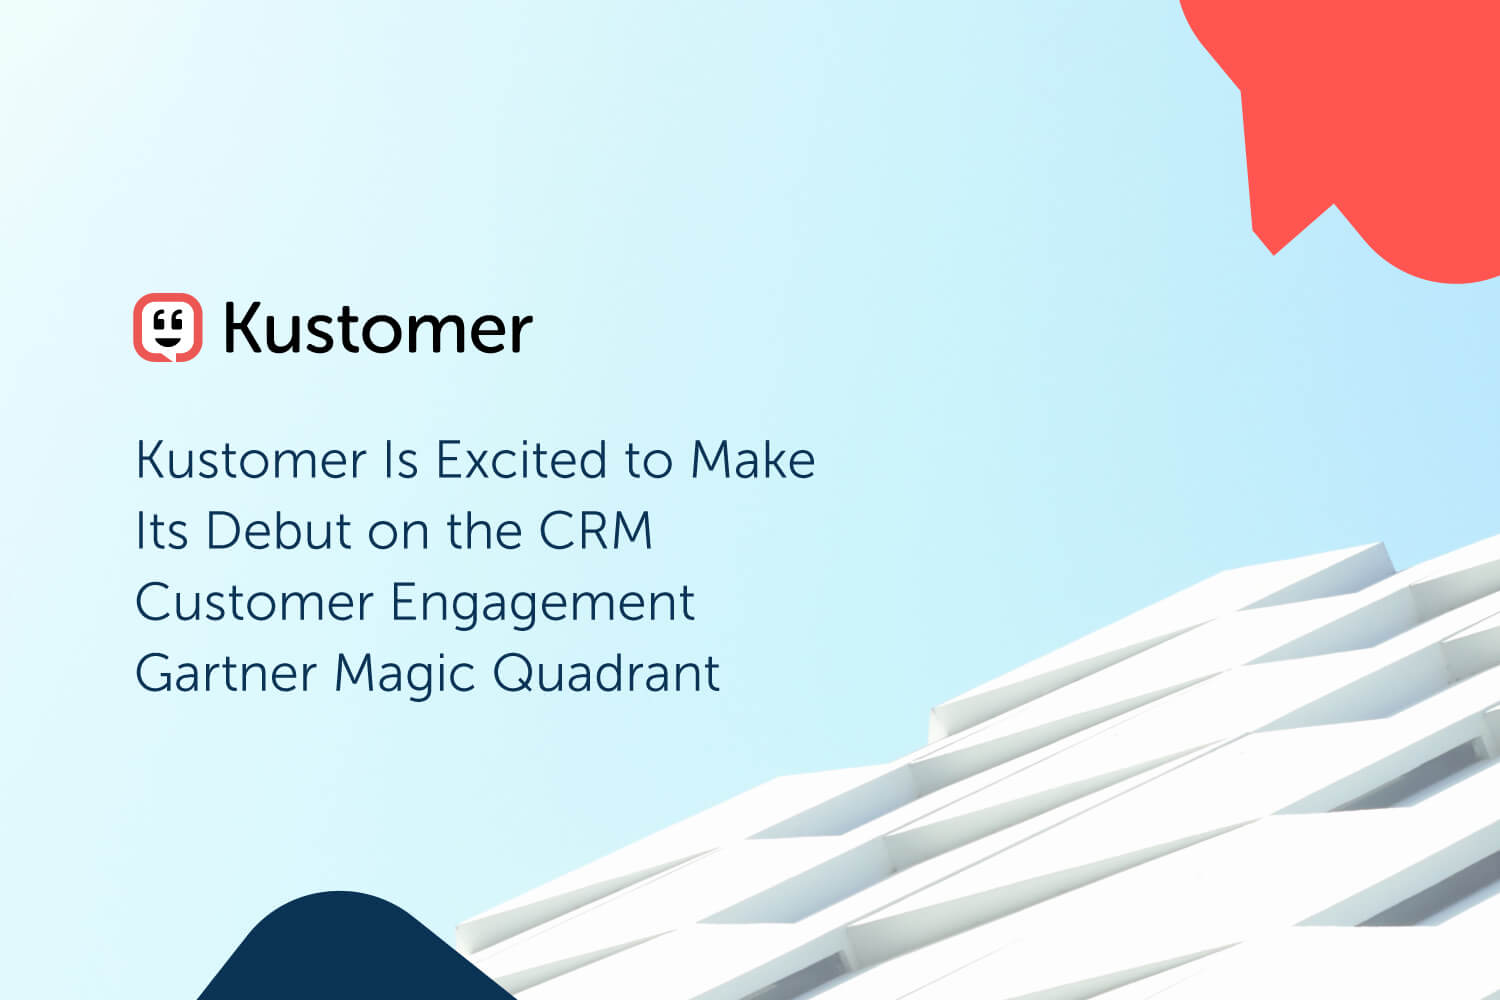 Kustomer Is Excited to Make Its Debut on the CRM Customer Engagement Gartner Magic Quadrant